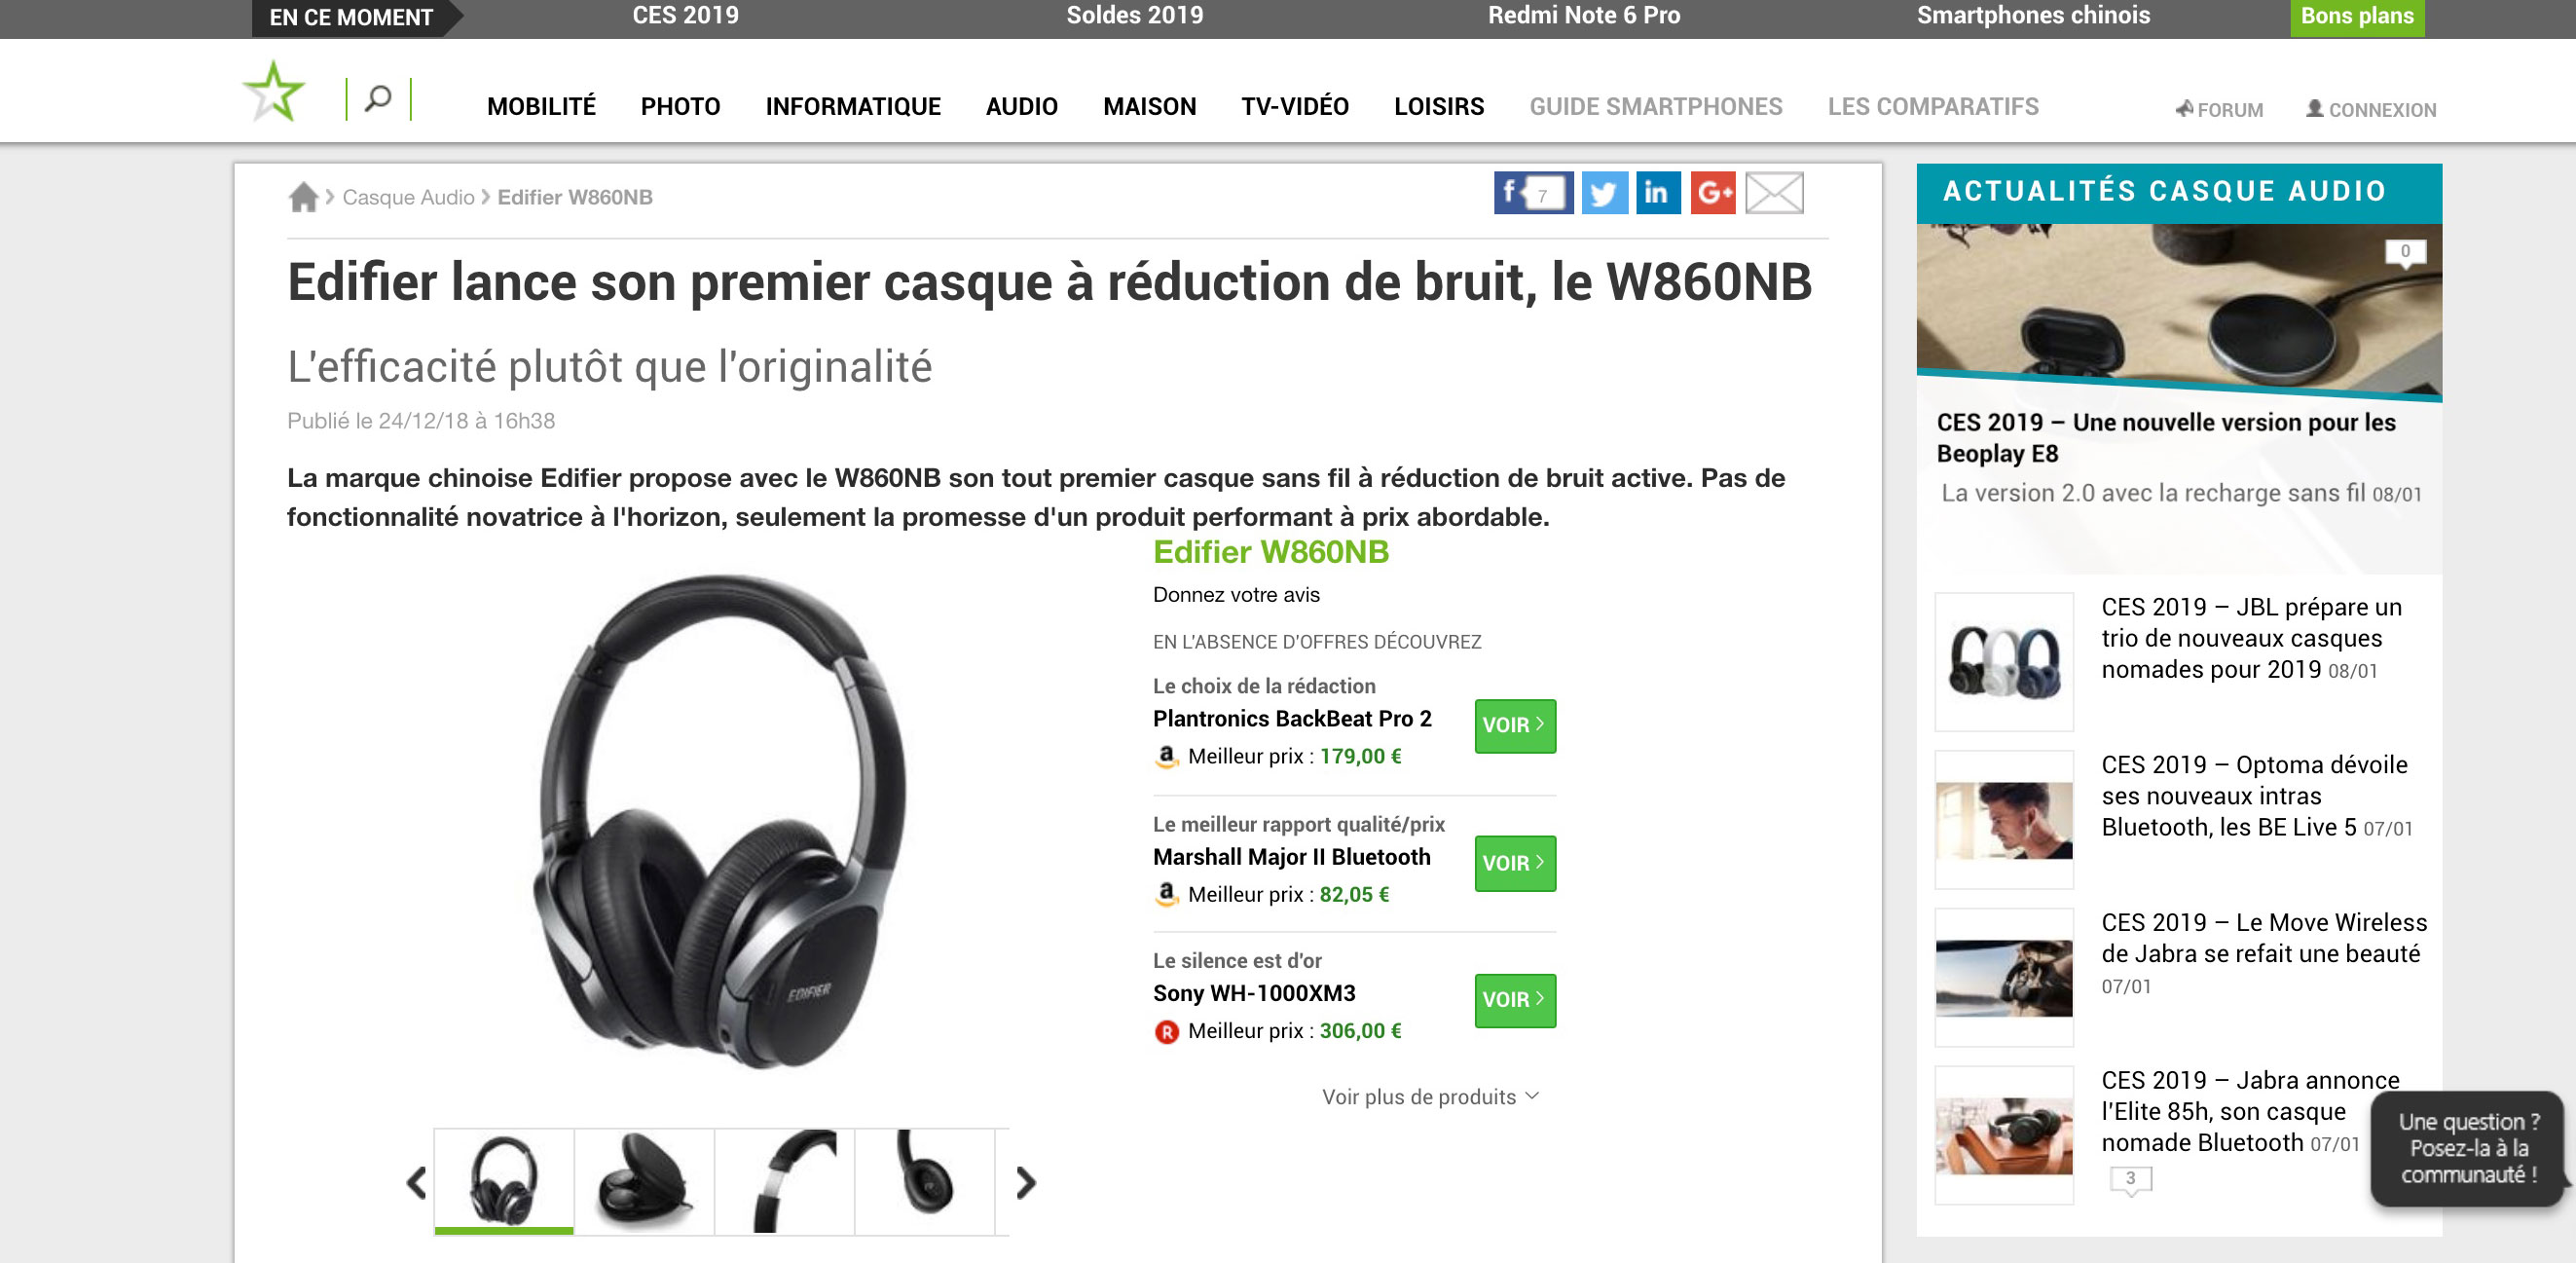 Edifier launches its first noise reduction headset, the W860NB